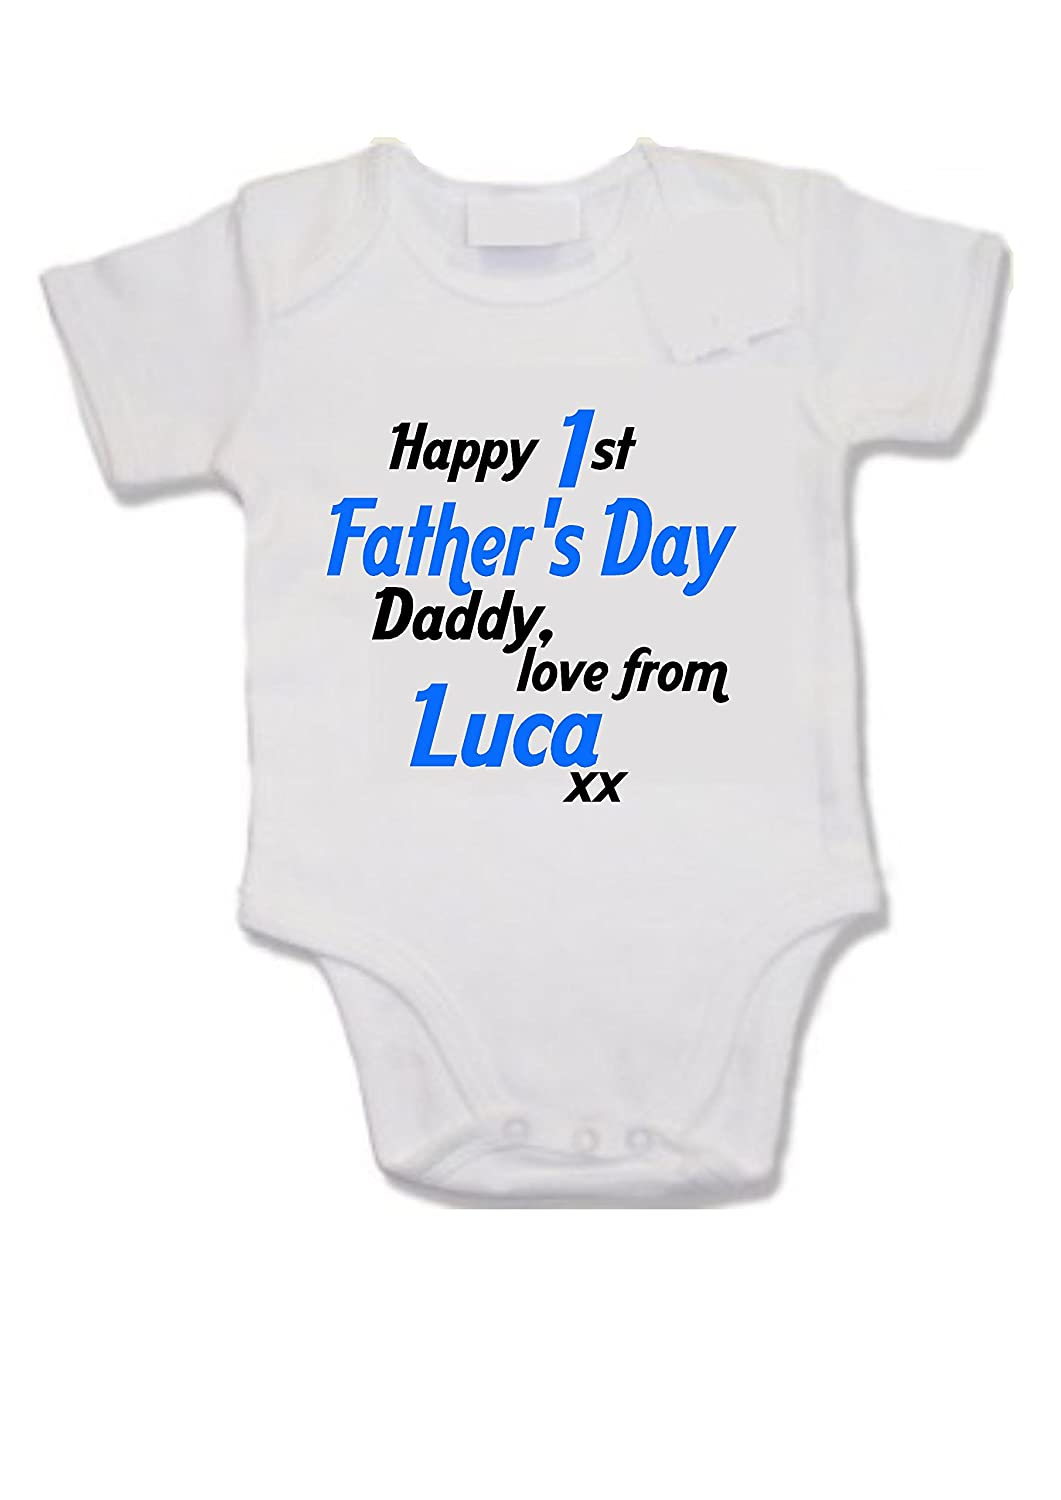 Customised baby vest - Happy 1st Father's Day Daddy love from (your name) xx son